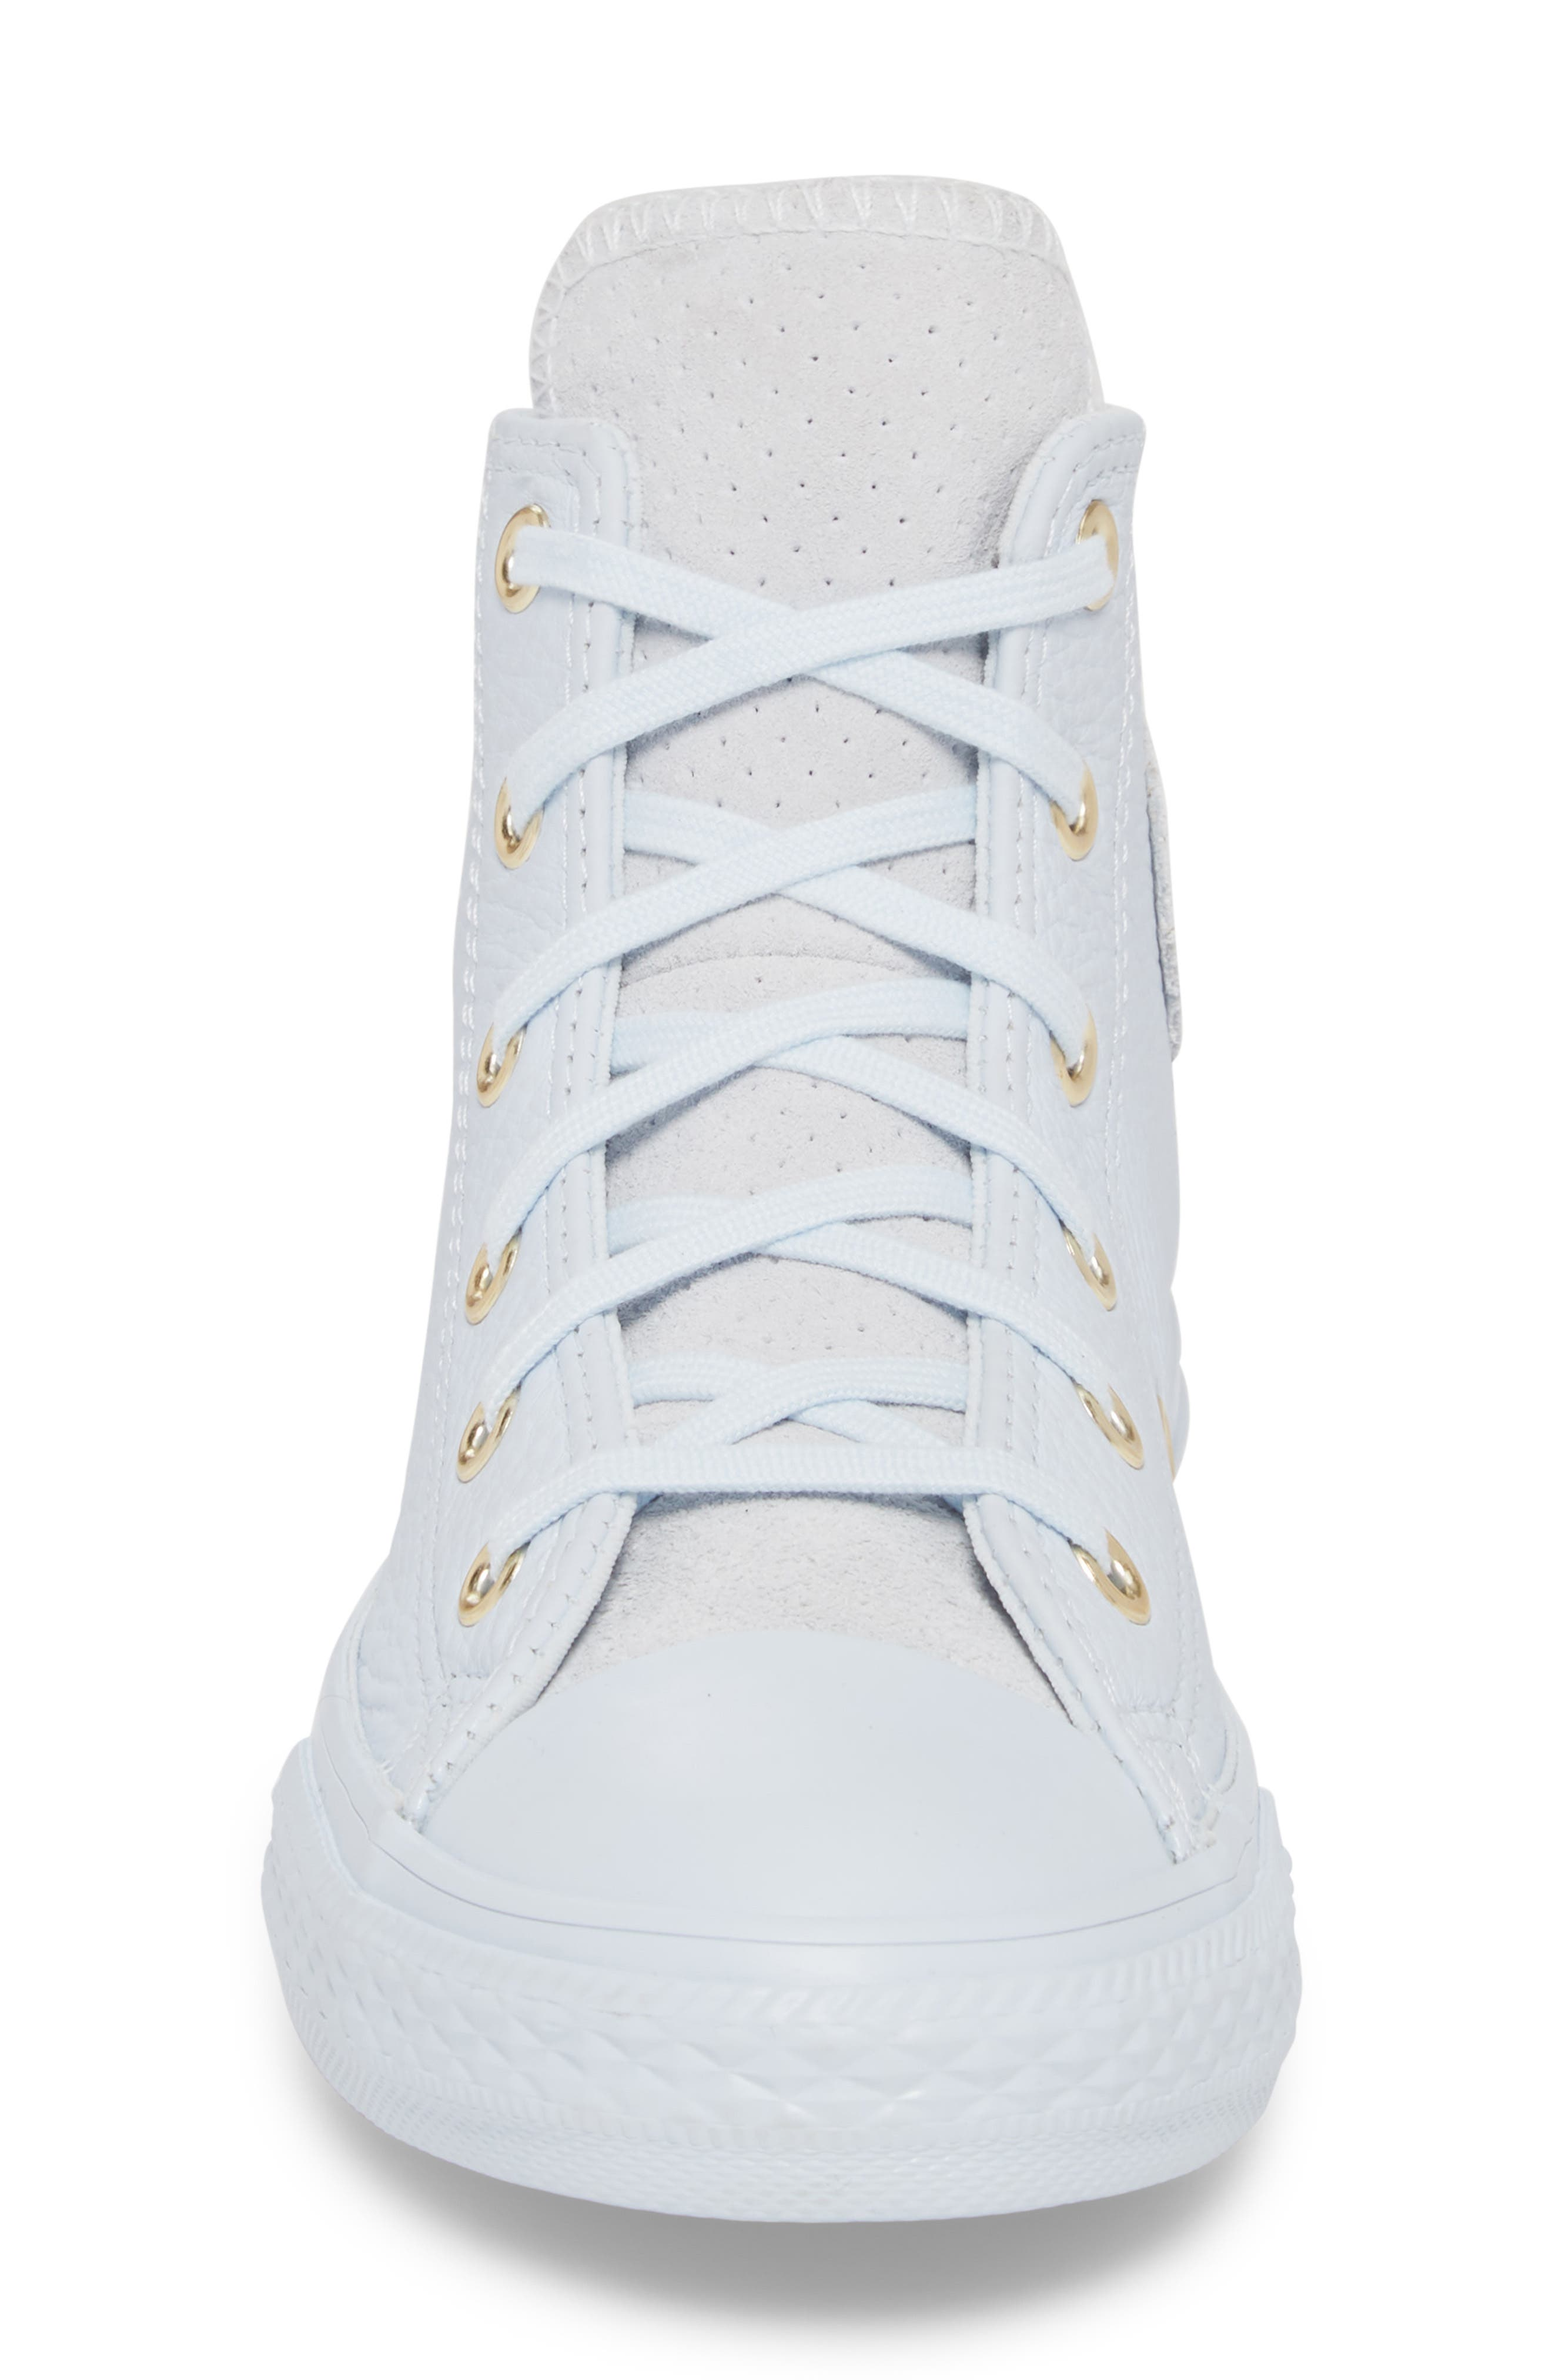 Chuck Taylor<sup>®</sup> All Star<sup>®</sup> Mono High Top Sneaker,                             Alternate thumbnail 4, color,                             454